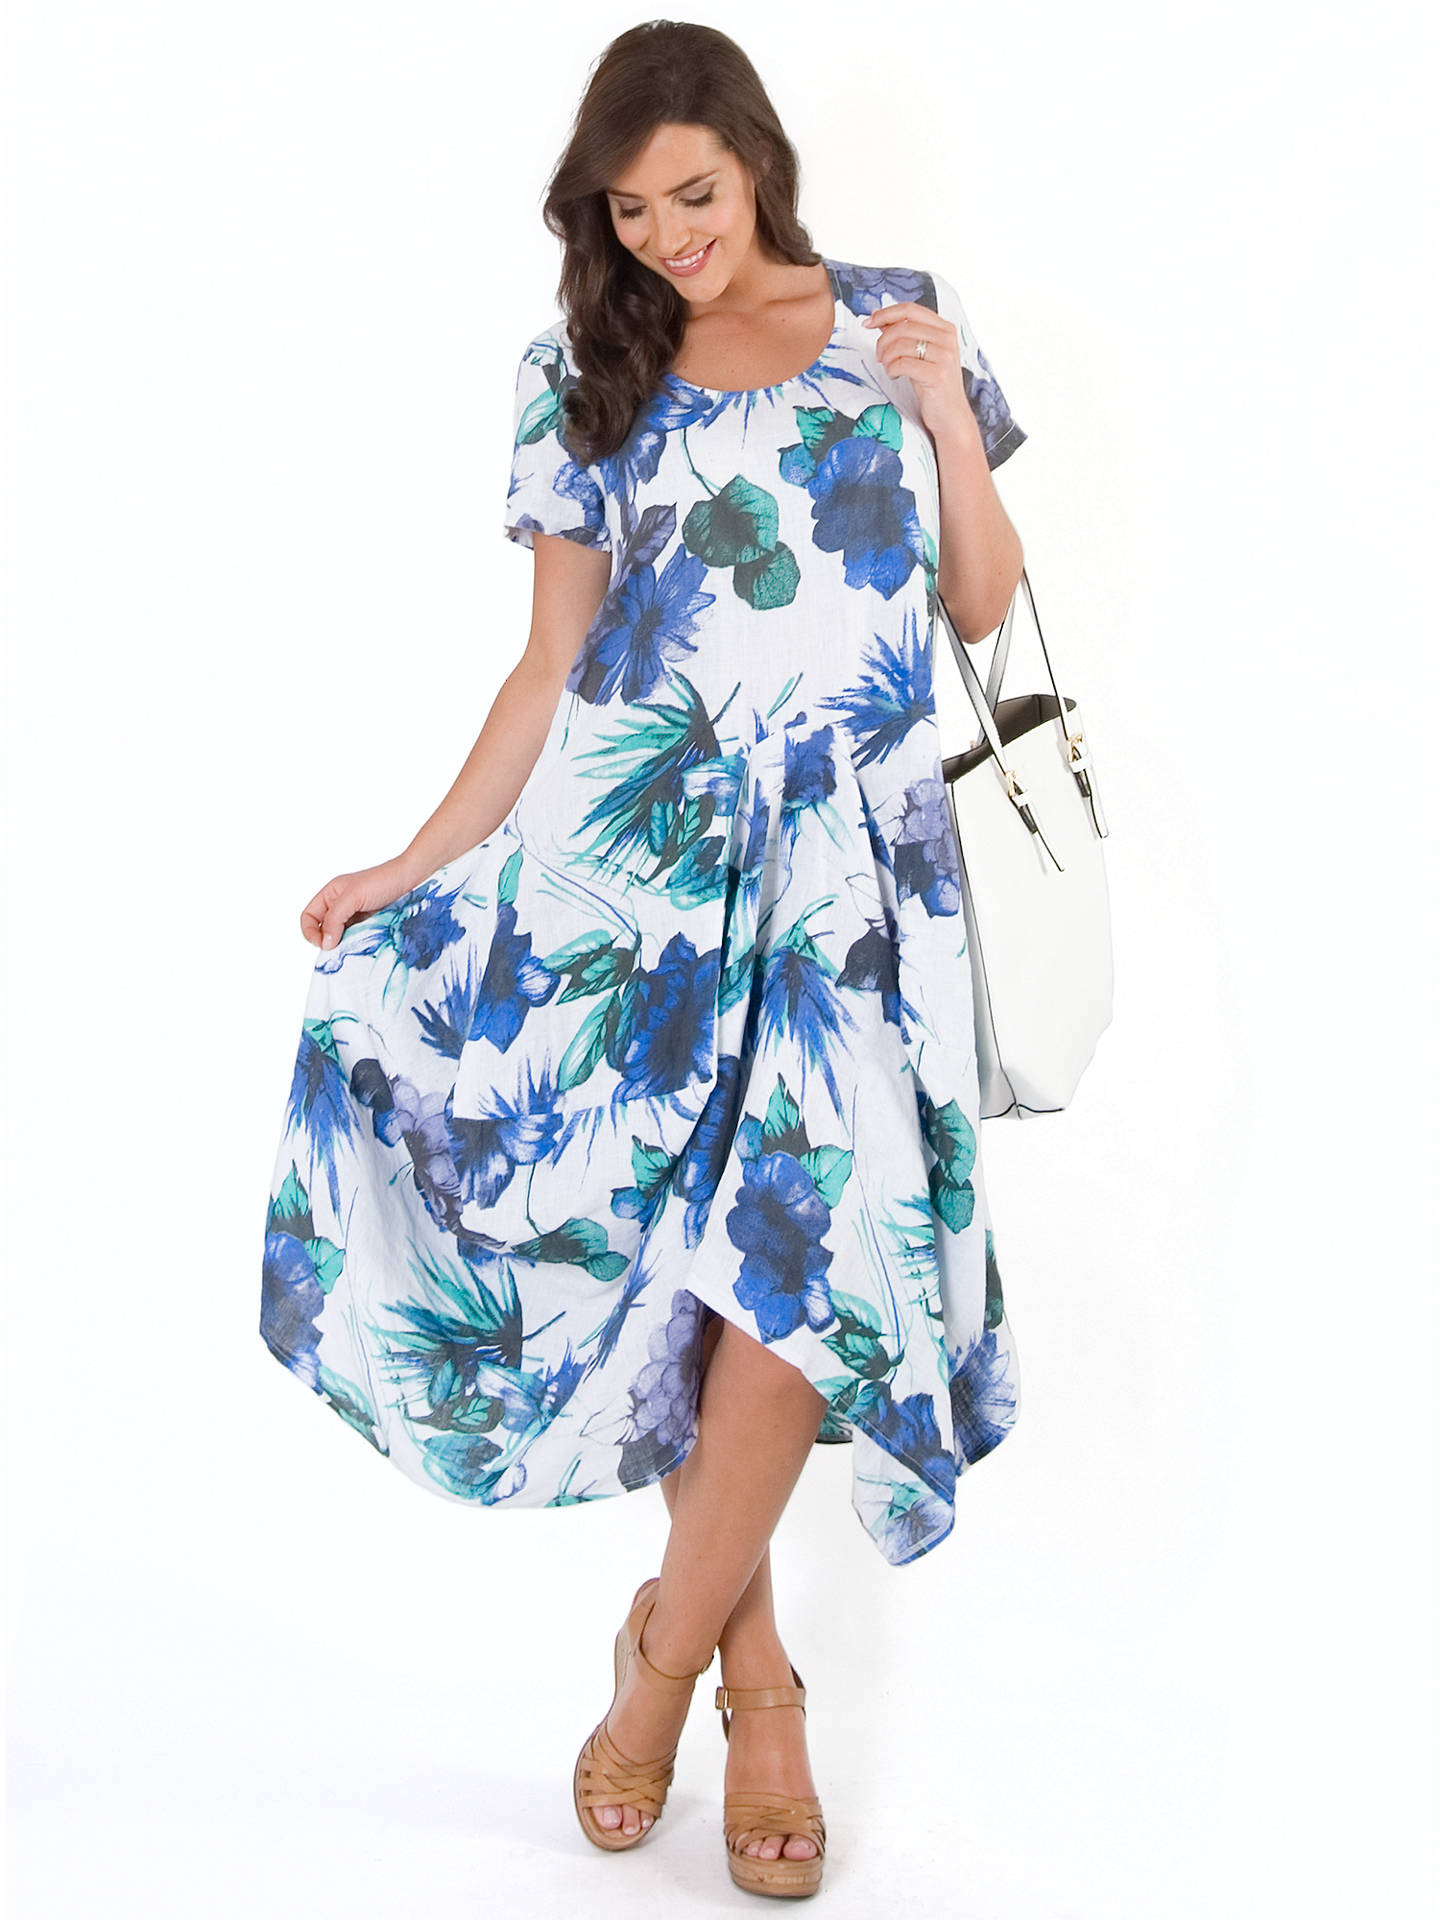 Buy Chesca Floral Print Linen Dress, White/Blue, 12-14 Online at johnlewis.com